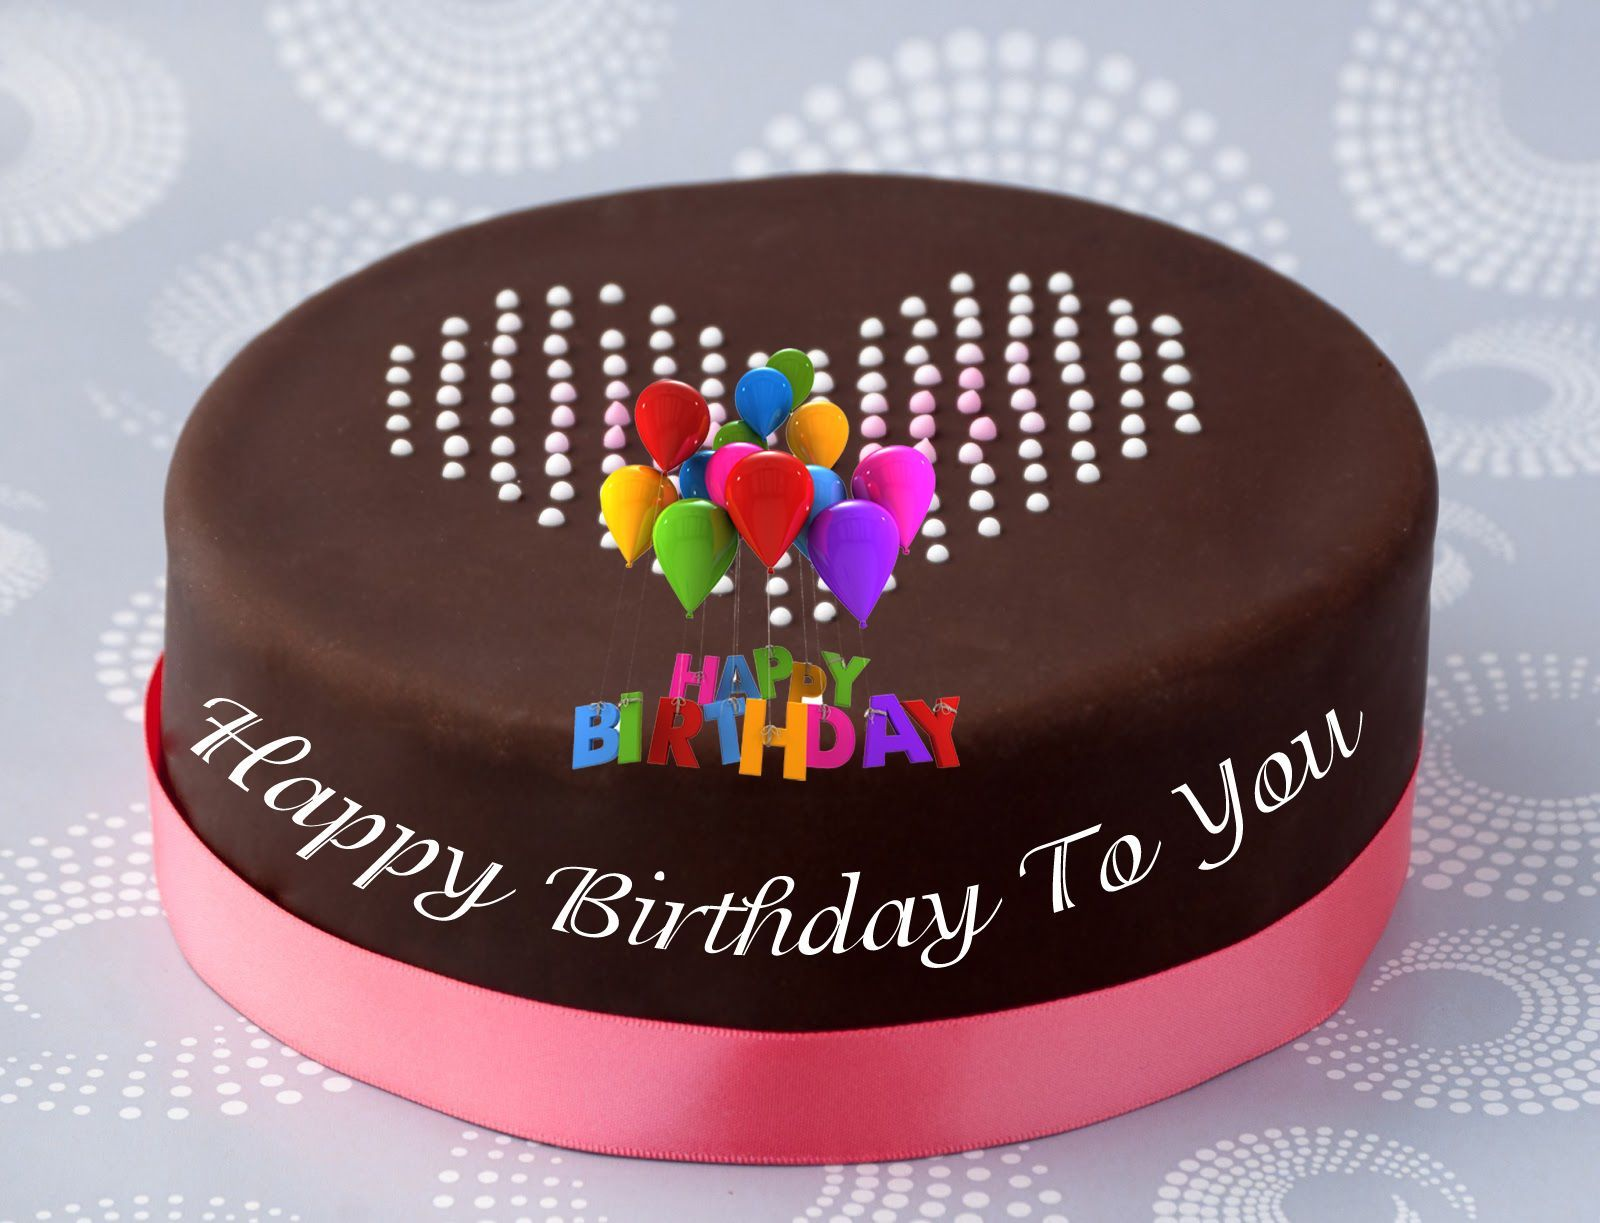 Happy Birthday Cake Images Free Download Happy Birthday ...